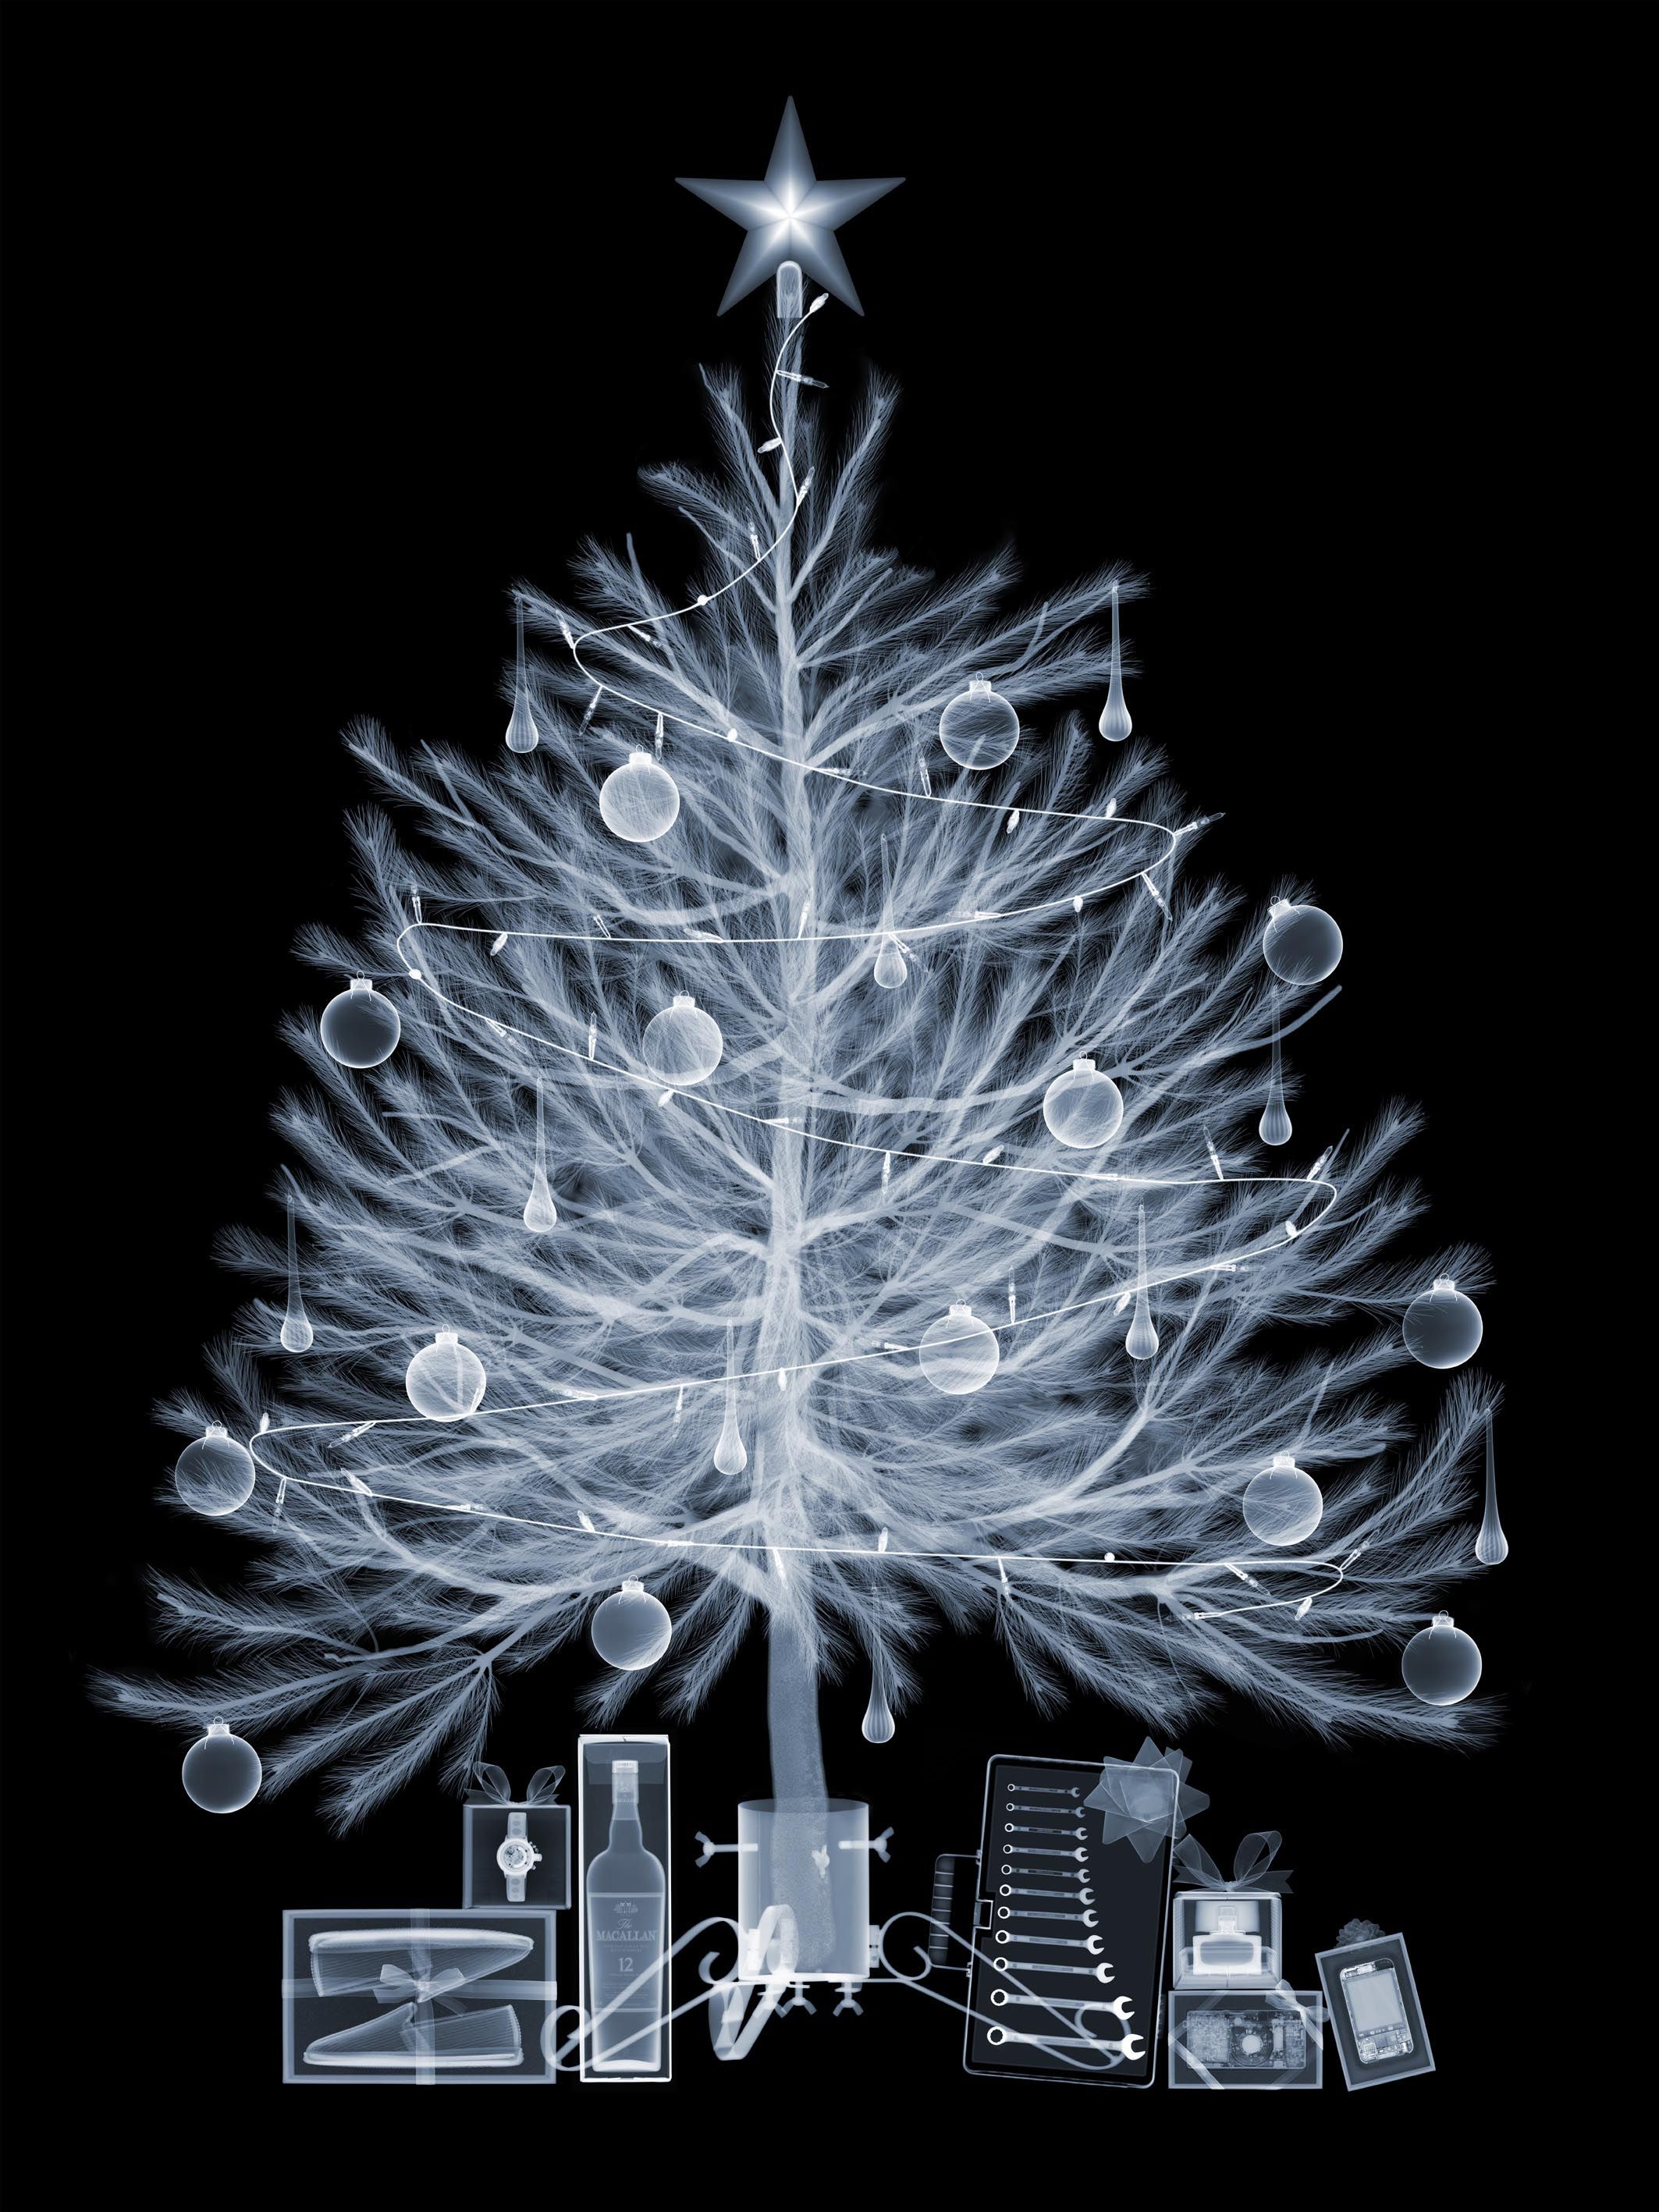 Prominent x,ray photographer Nick Veasey\u0027s take on our